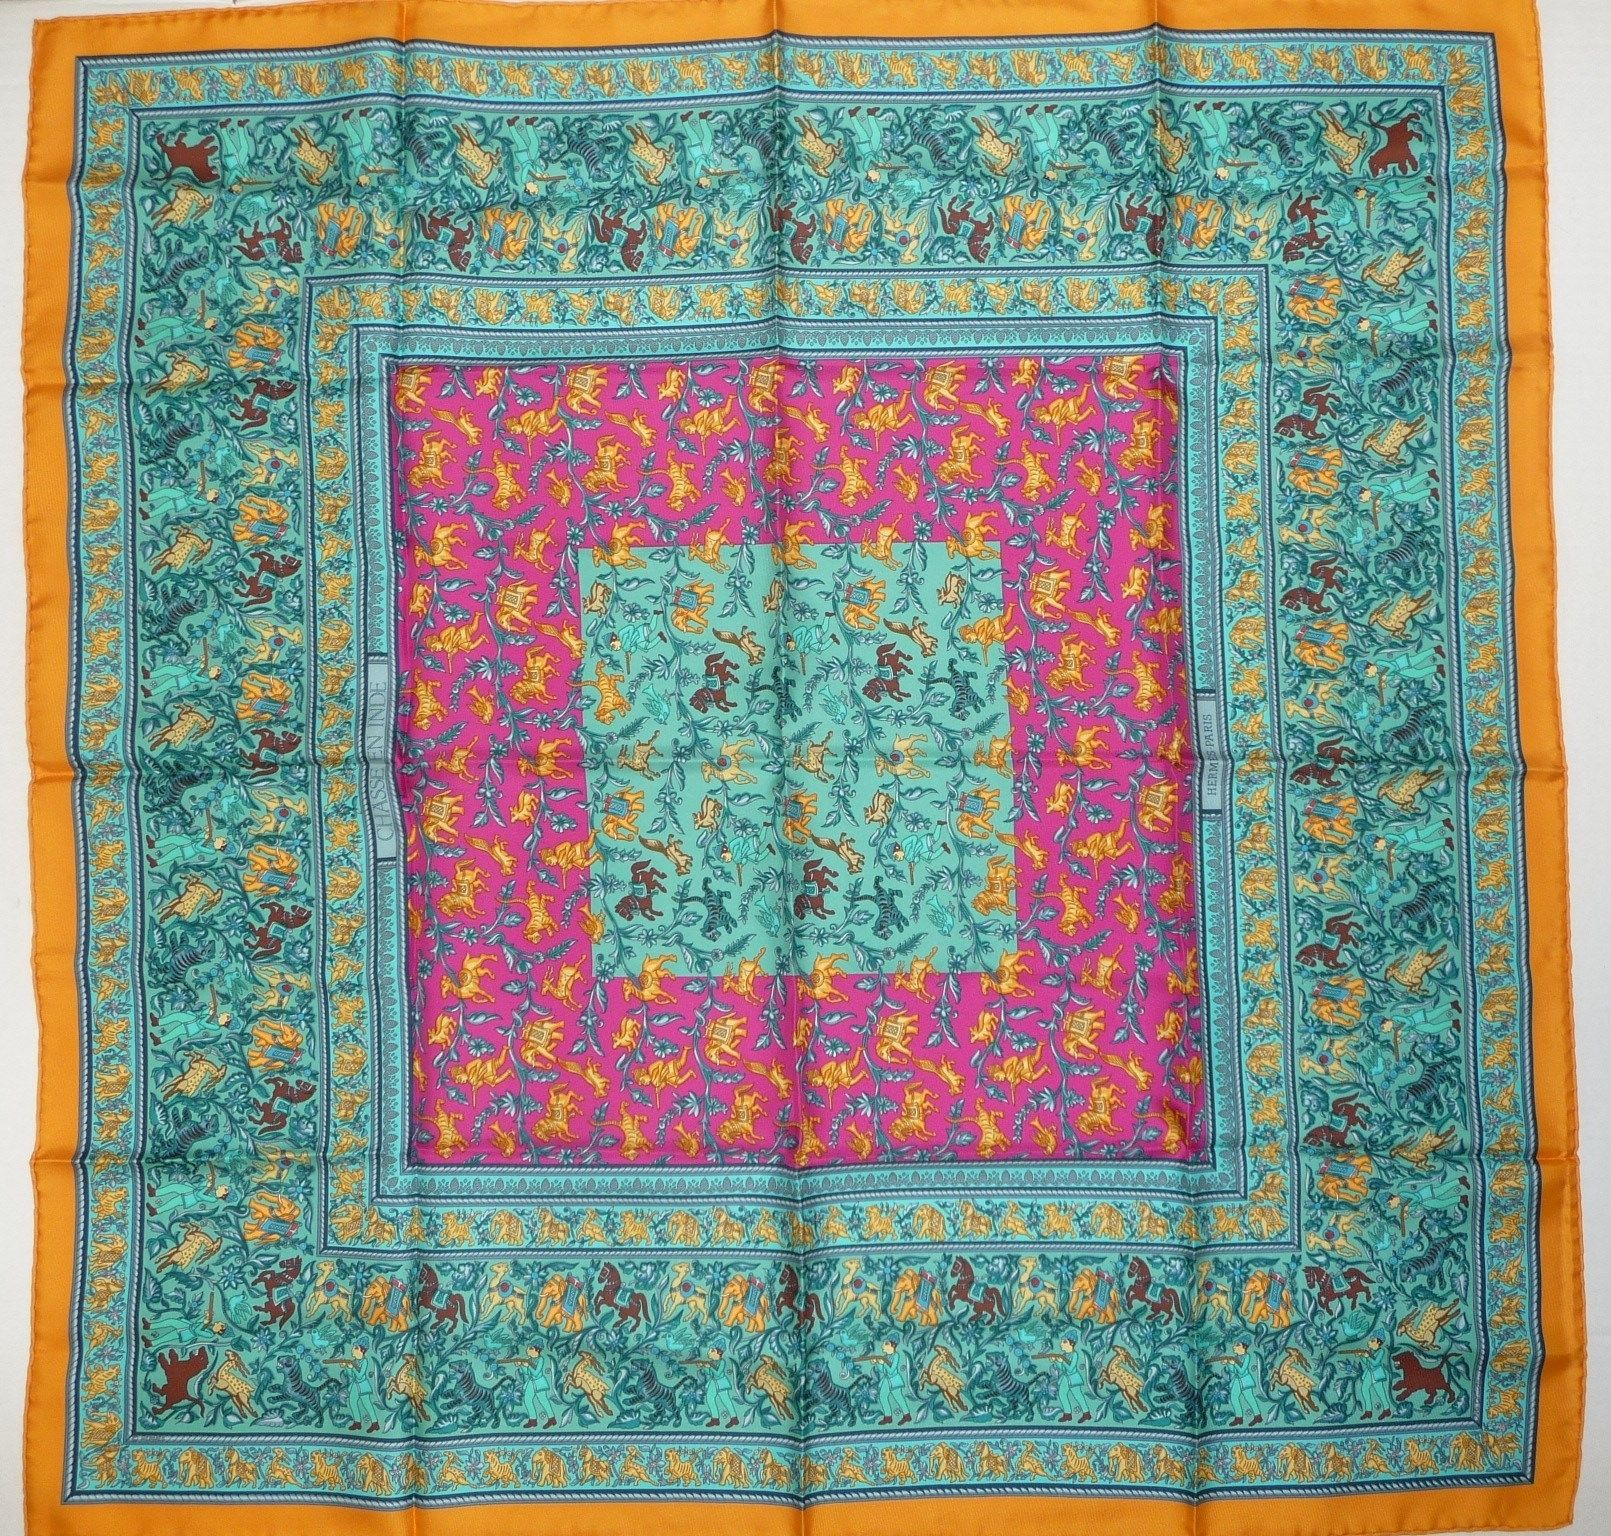 HERMES Paris Chasse En Inde Turquoise Pink Handrolled Silk Scarf 90 CM. Get the lowest price on HERMES Paris Chasse En Inde Turquoise Pink Handrolled Silk Scarf 90 CM and other fabulous designer clothing and accessories! Shop Tradesy now